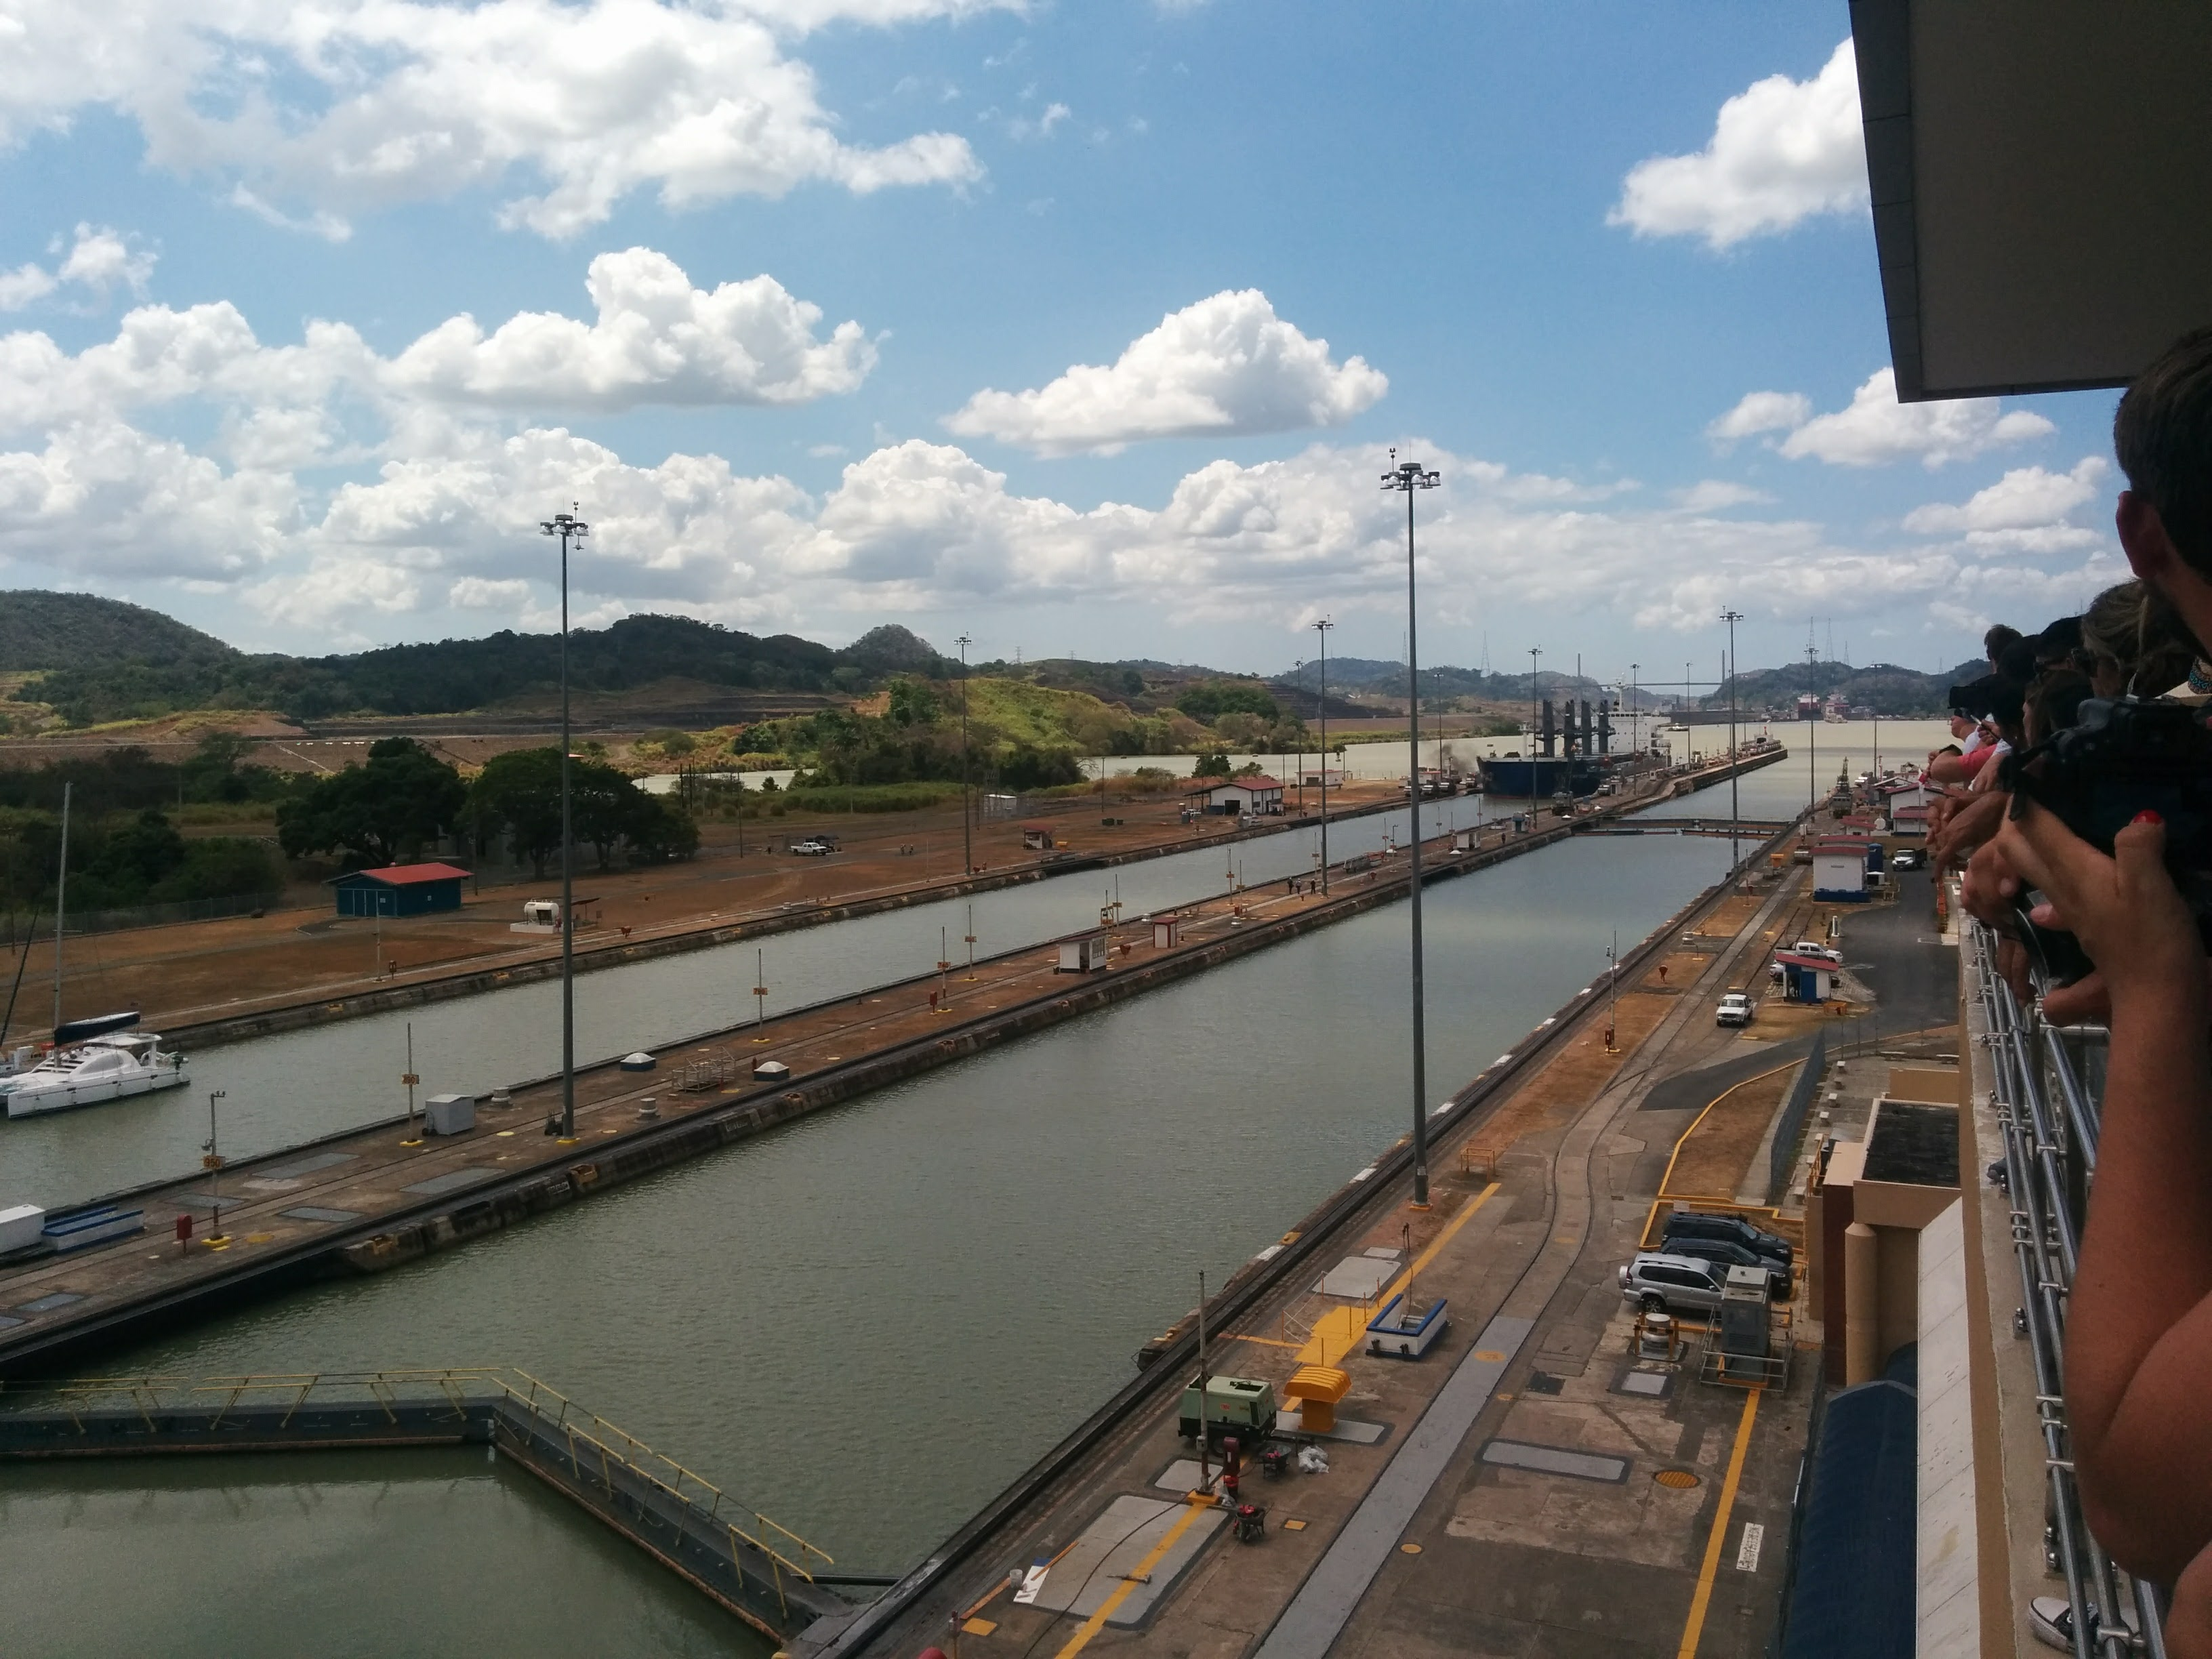 2) Container ship entering lock